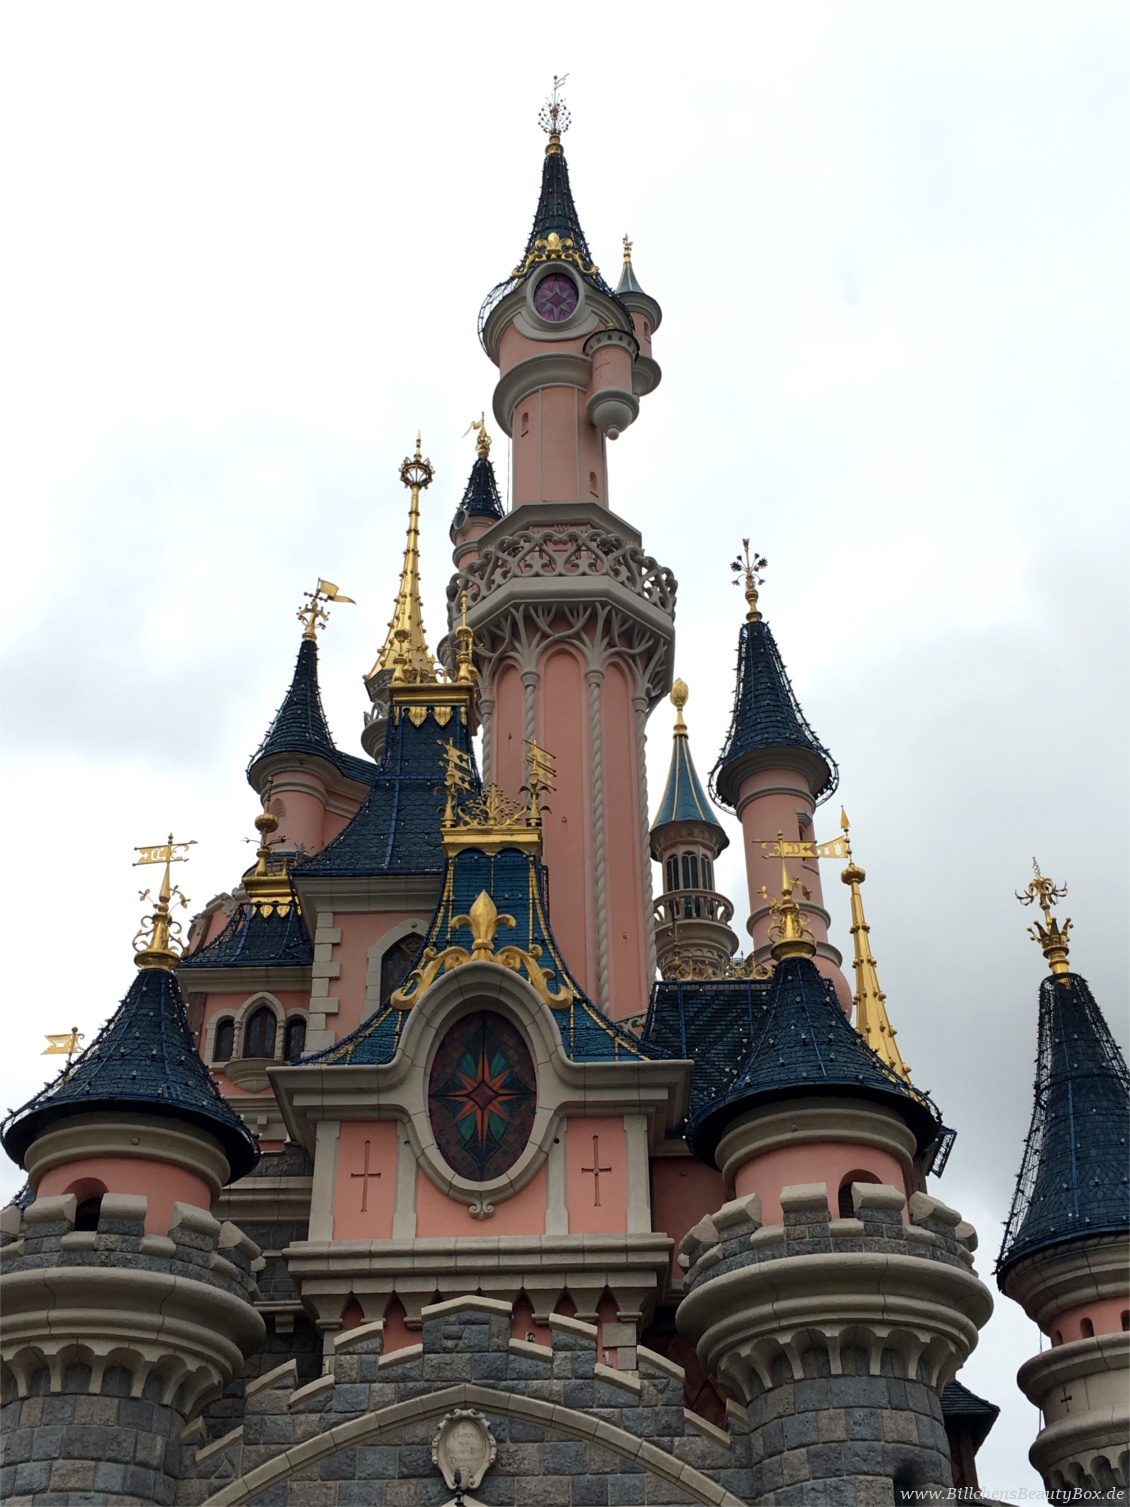 Disneyland Paris - Sleeping Beauty Castle - Dornröschenschloss